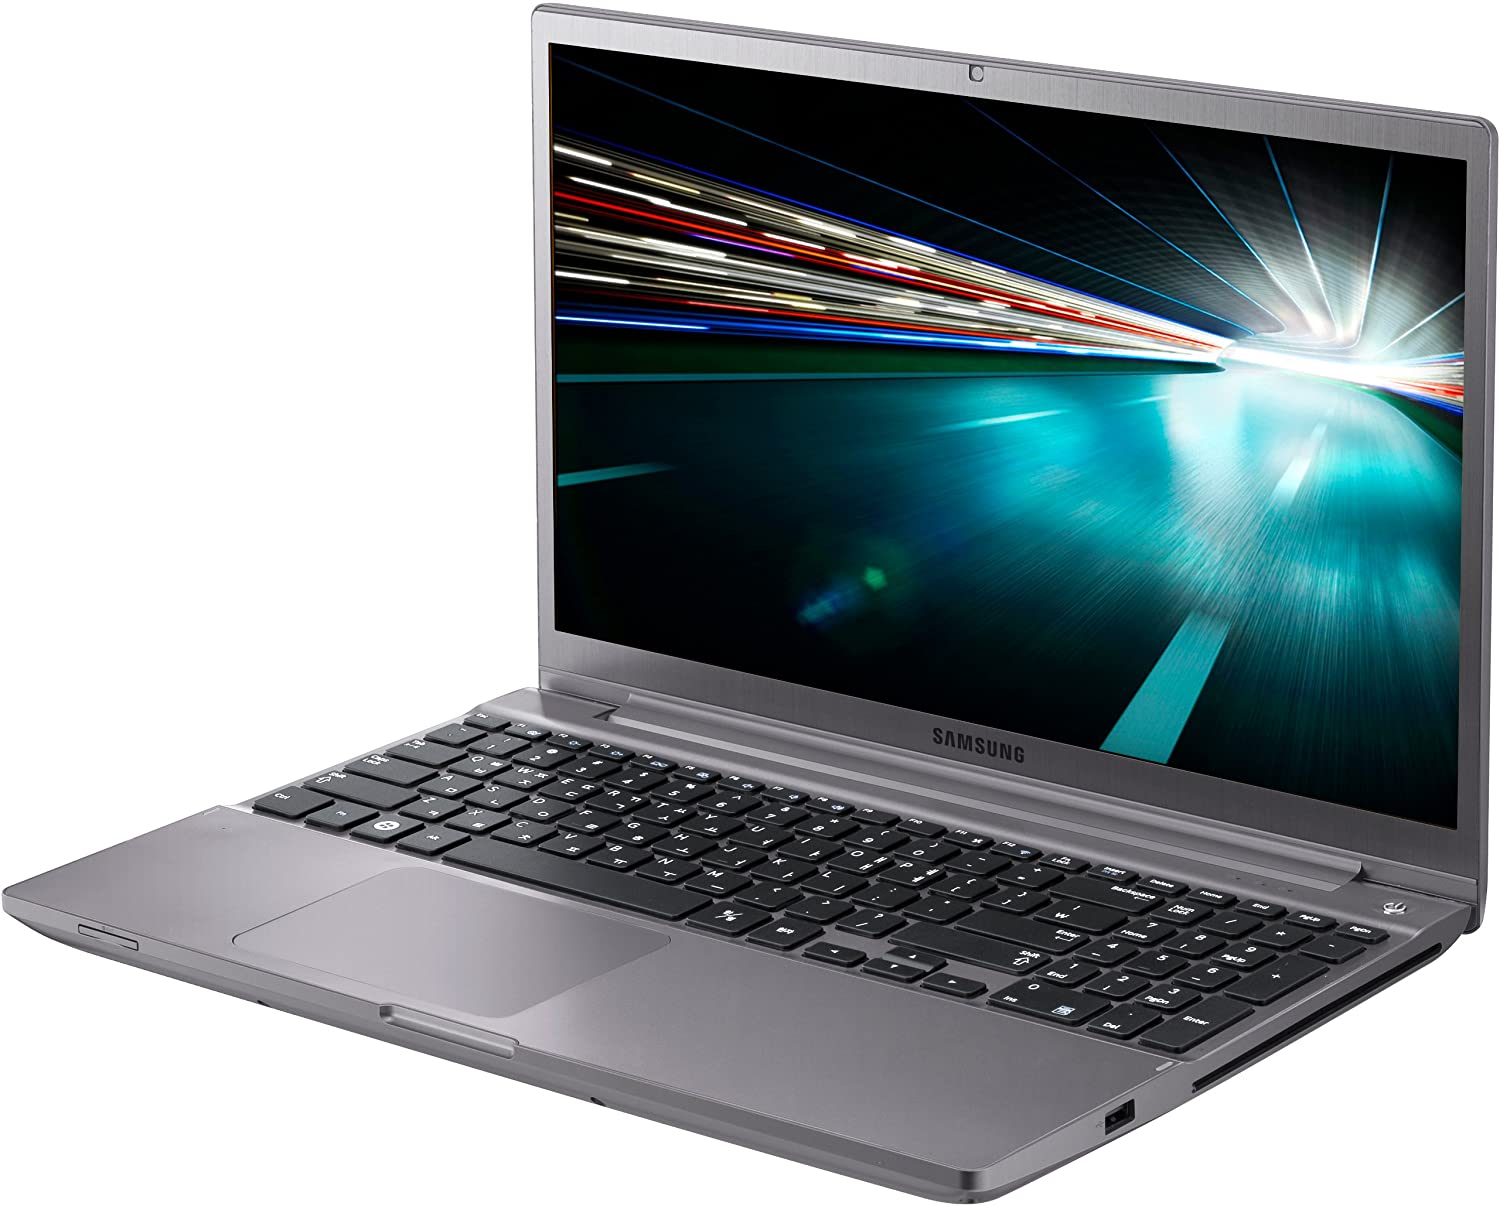 Samsung Serie 7 Chronos NP700Z5A S03 38,1 cm Laptop: Amazon.de ...